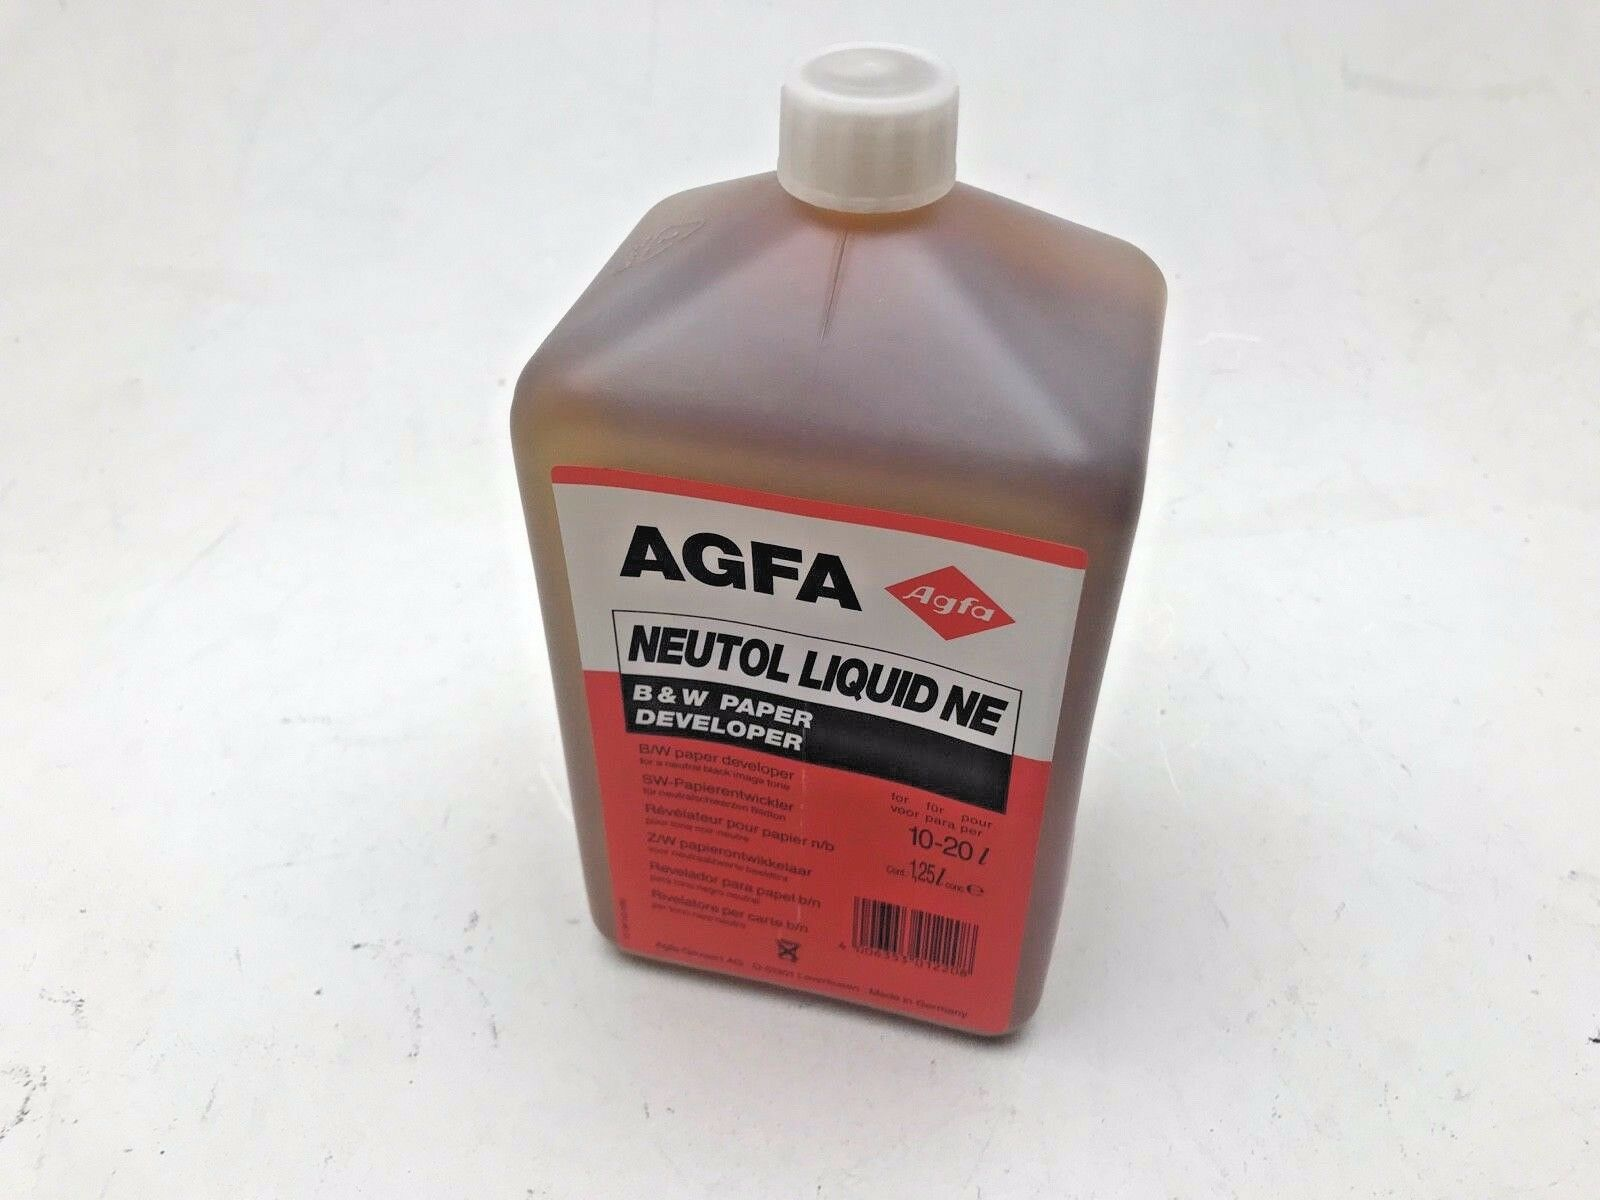 Agfa Neutol NE paper developer